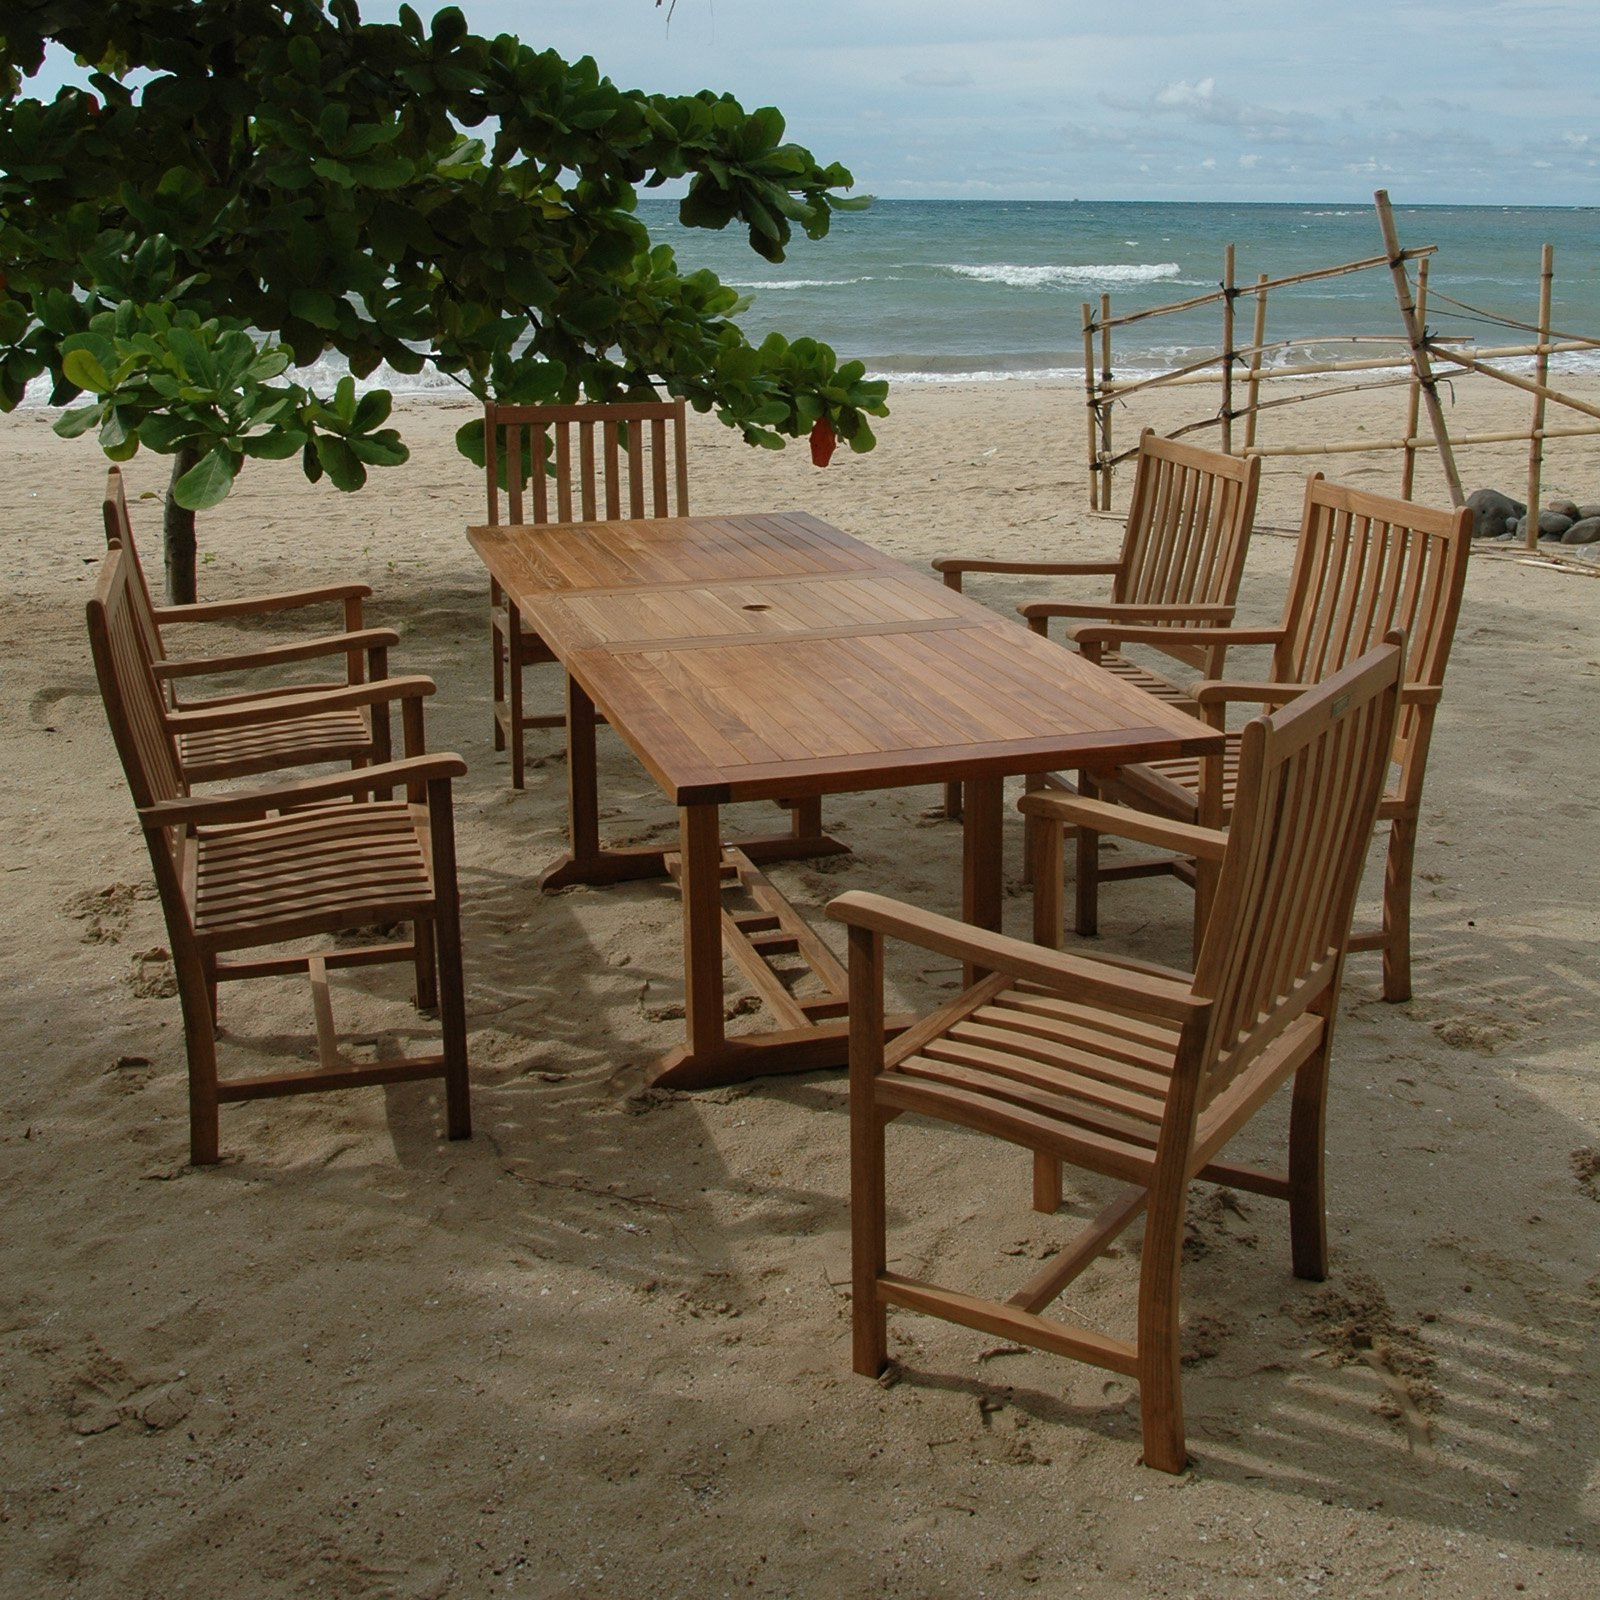 Anderson Teak Wilshire 9 Piece Extension Patio Dining Room Set by Anderson